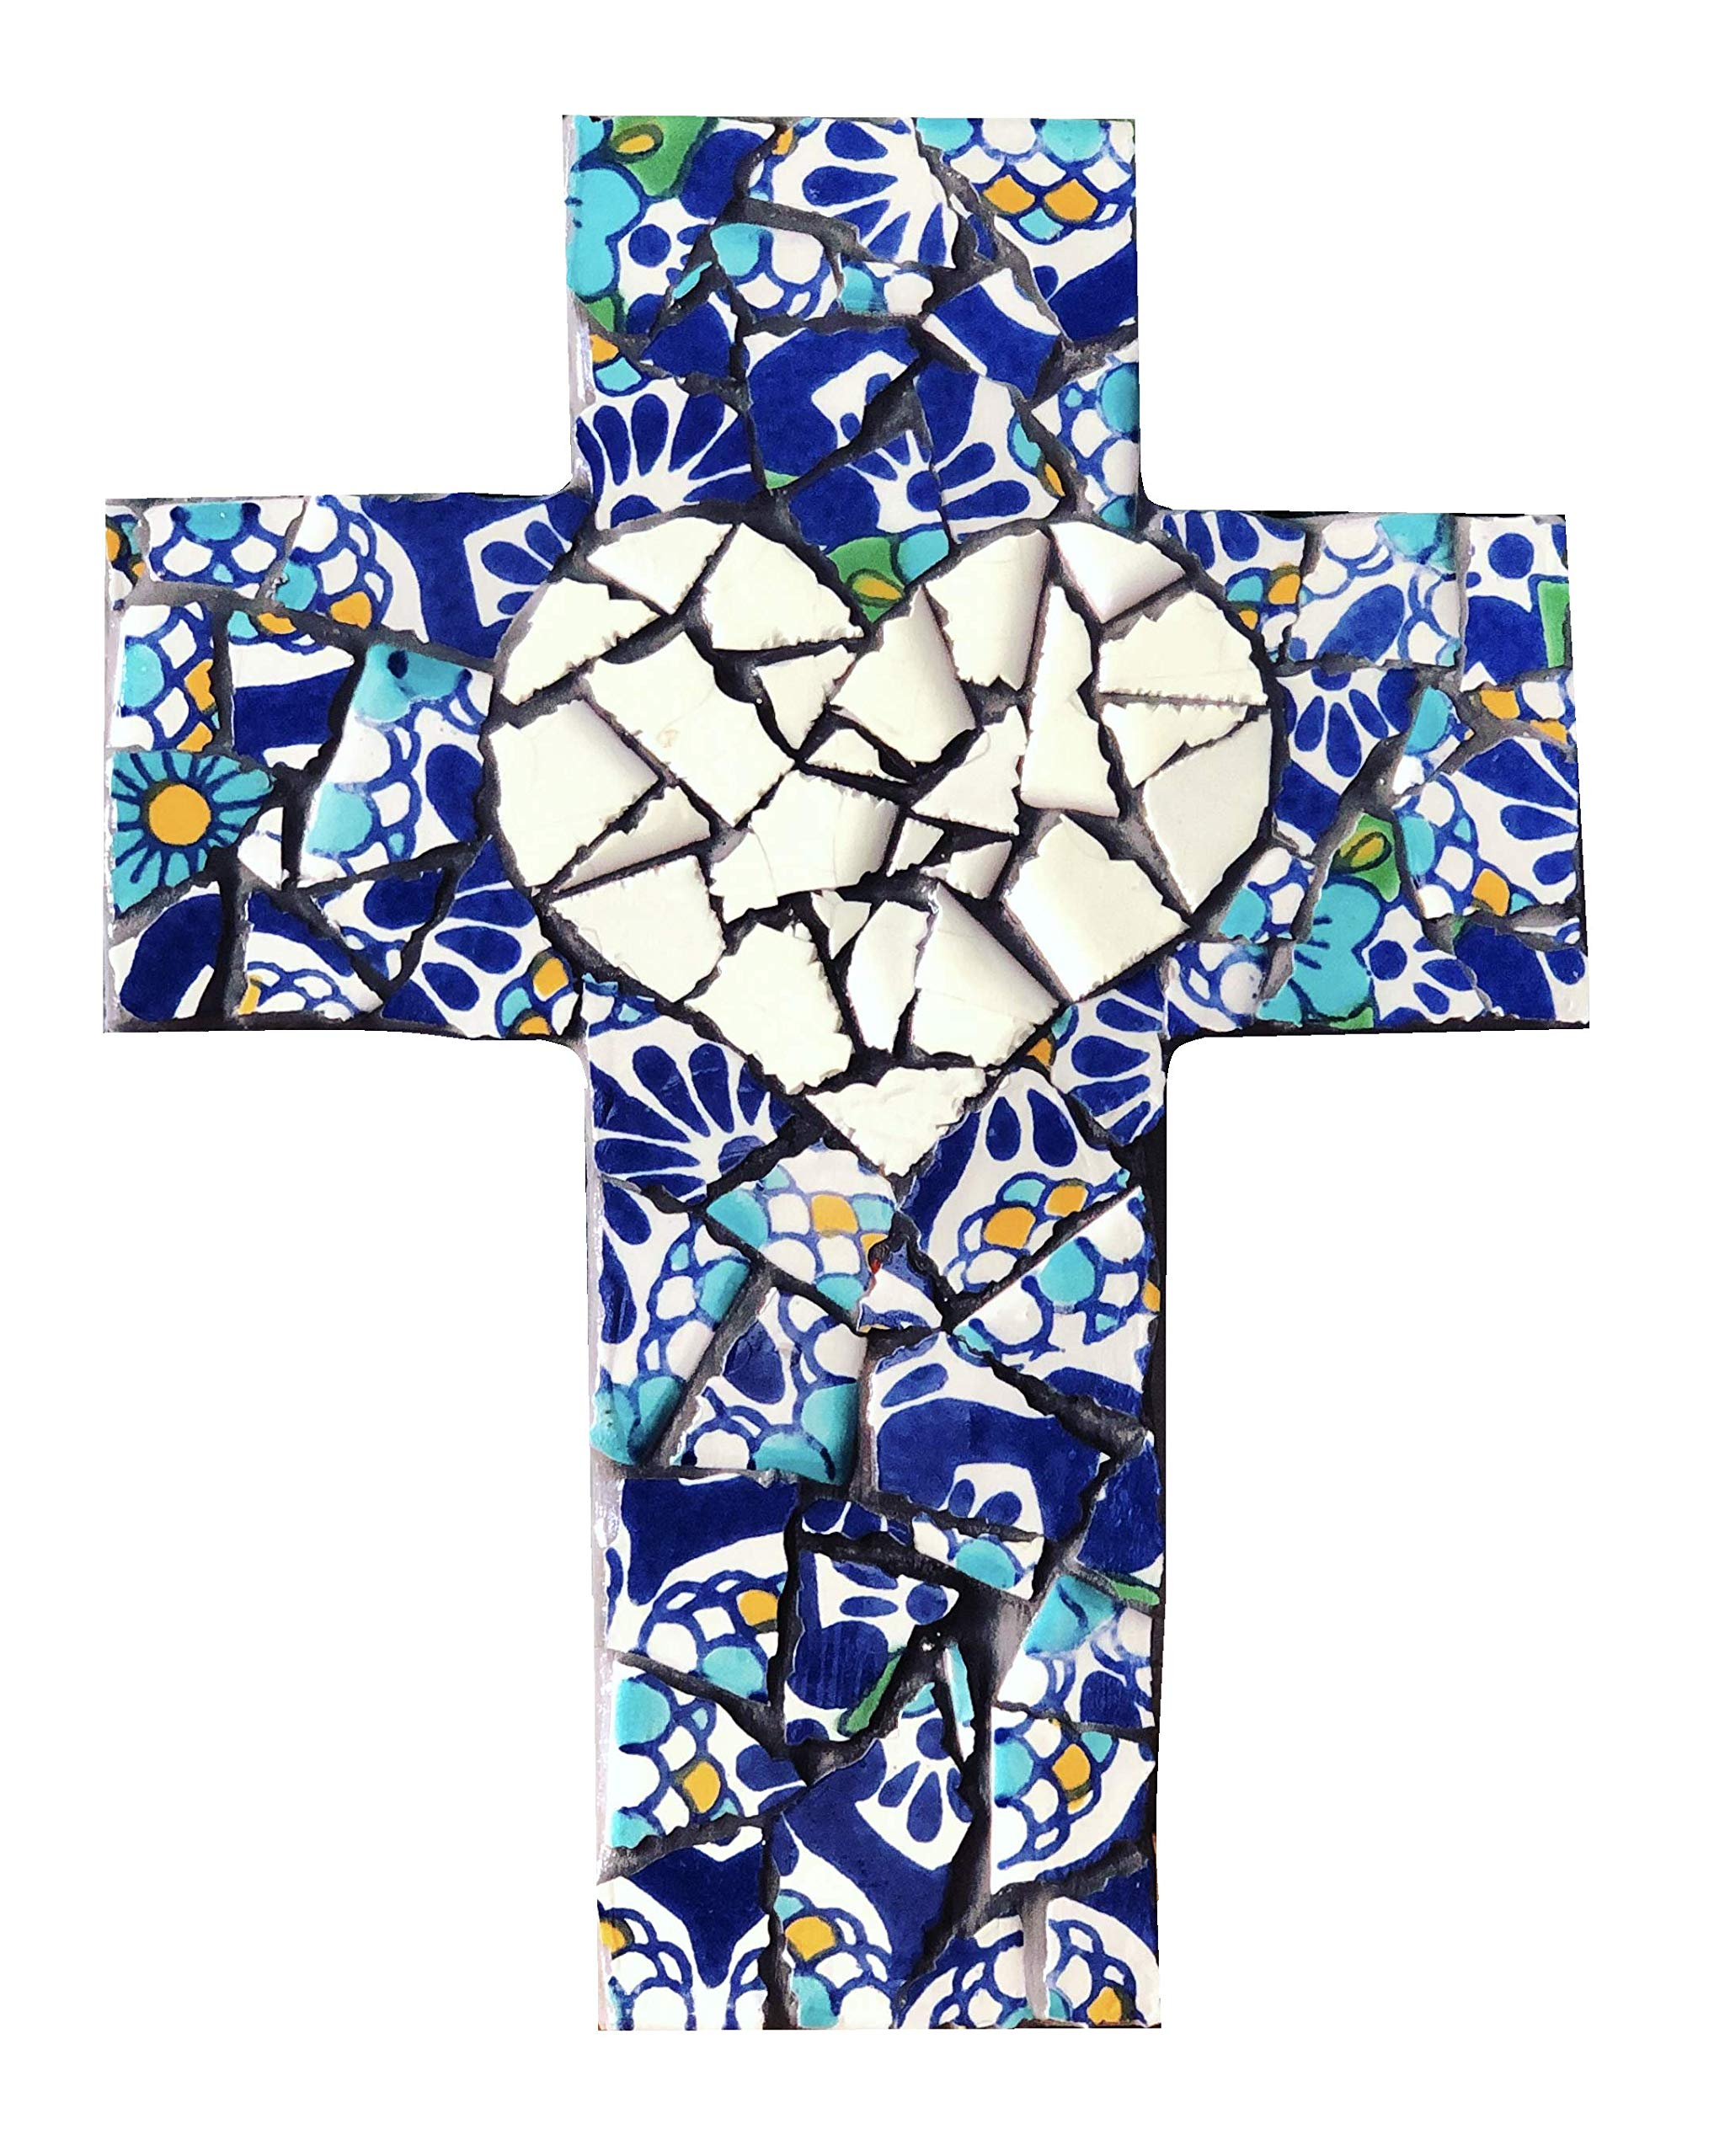 Mexican Tile Talavera Wall Mosaic Cross Assorted Blue with Ivory Heart